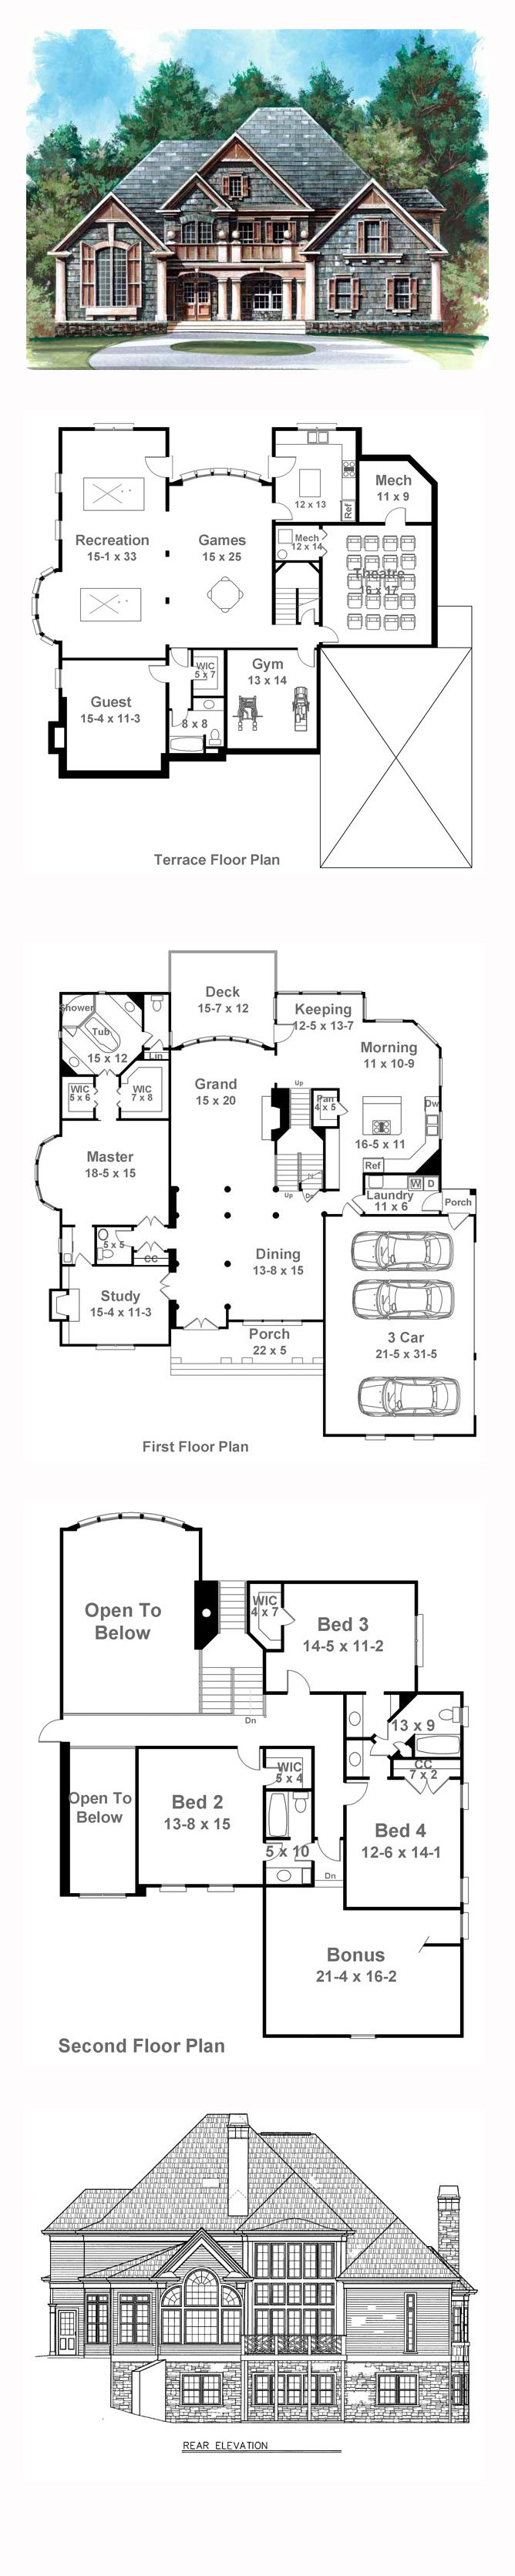 Best 25 basement house plans ideas only on pinterest for Basement design layouts